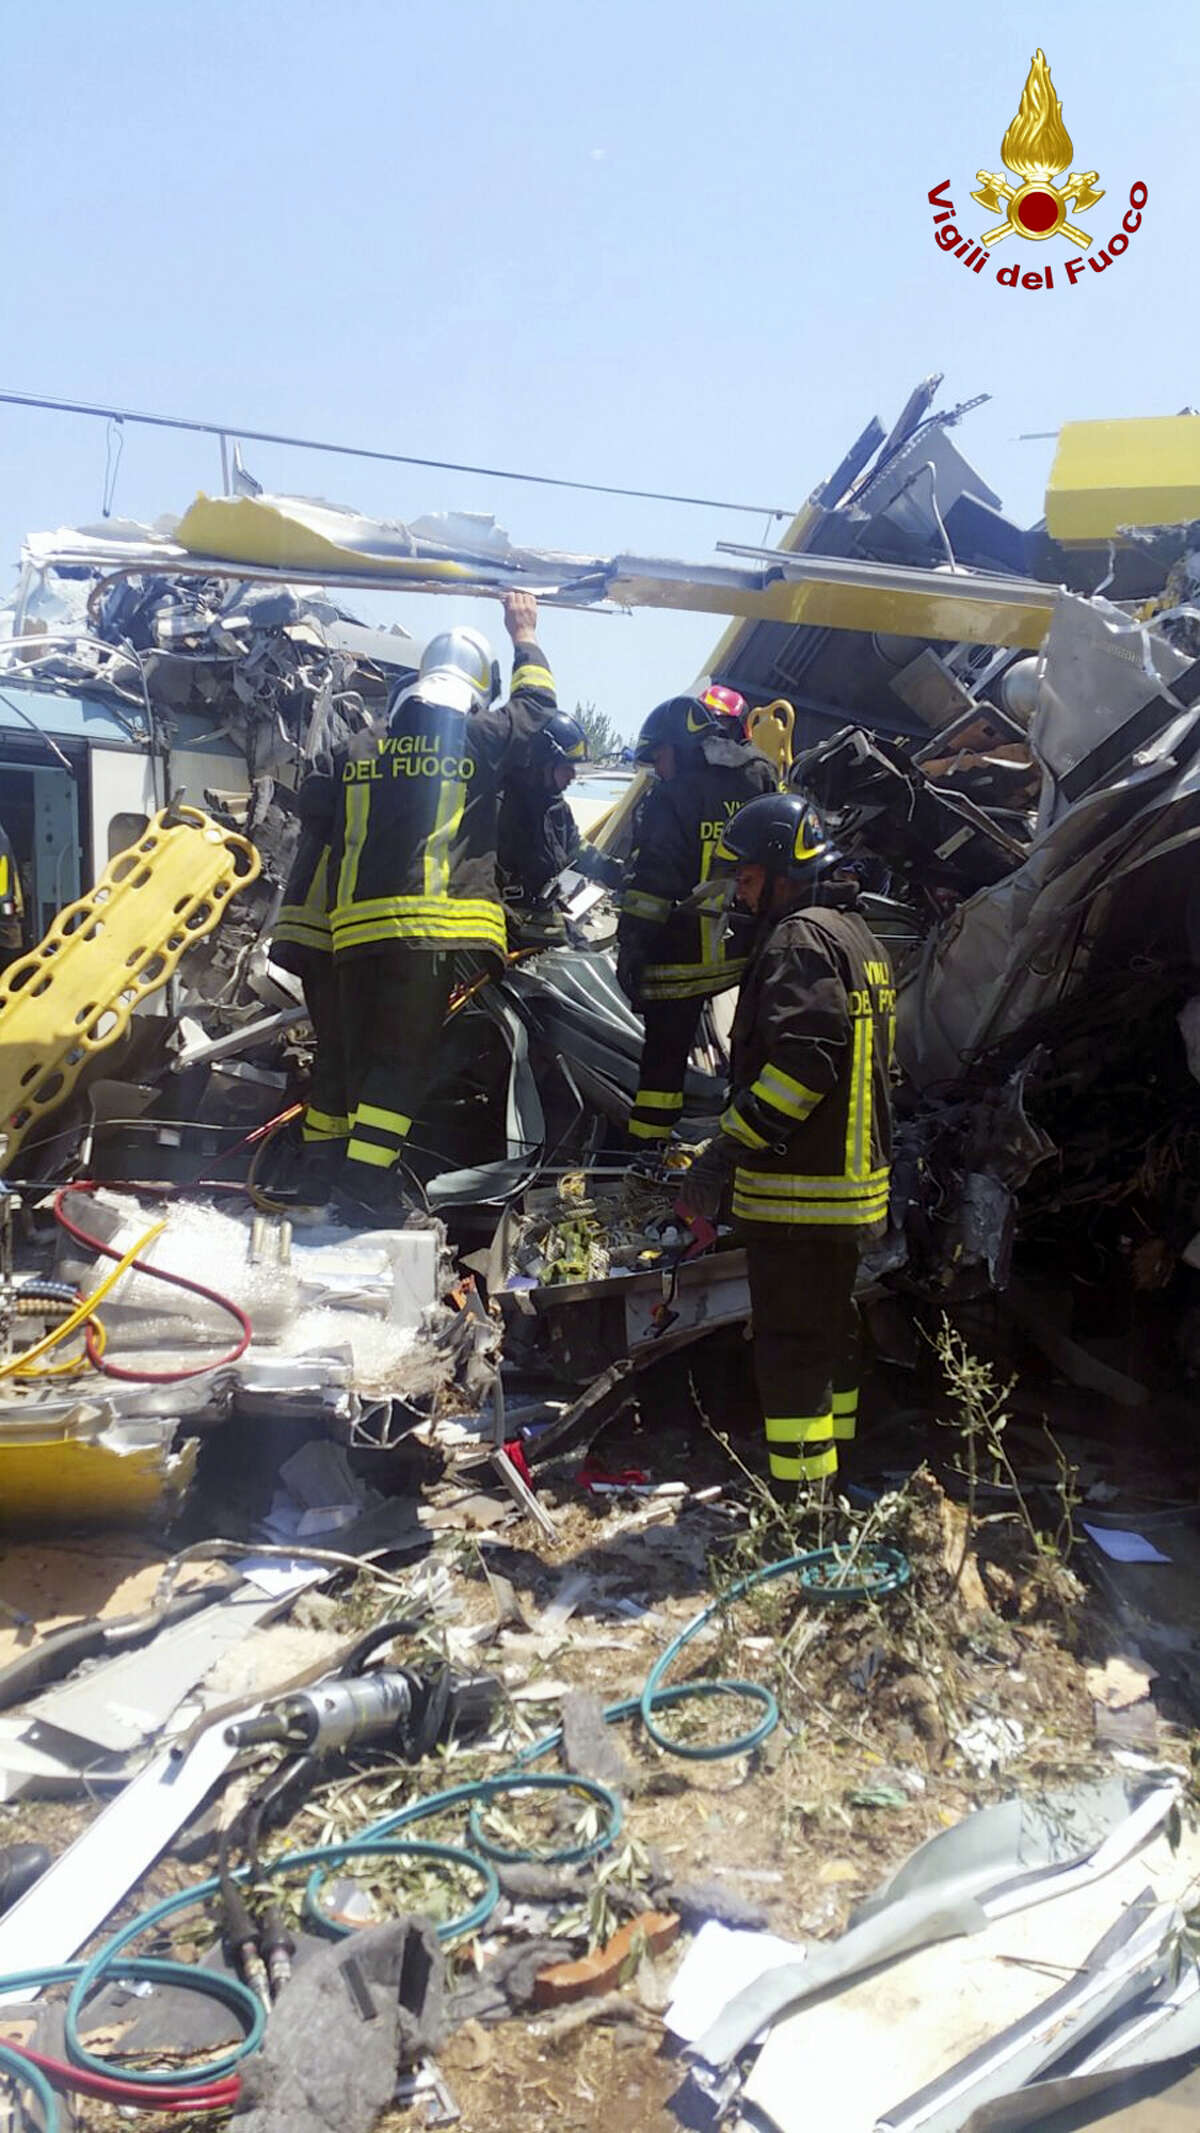 Italian firefighters perform rescue operations at the scene of a train accident after two commuter trains collided head-on near the town of Andria, in the southern region of Puglia, killing several people on July 12, 2016.